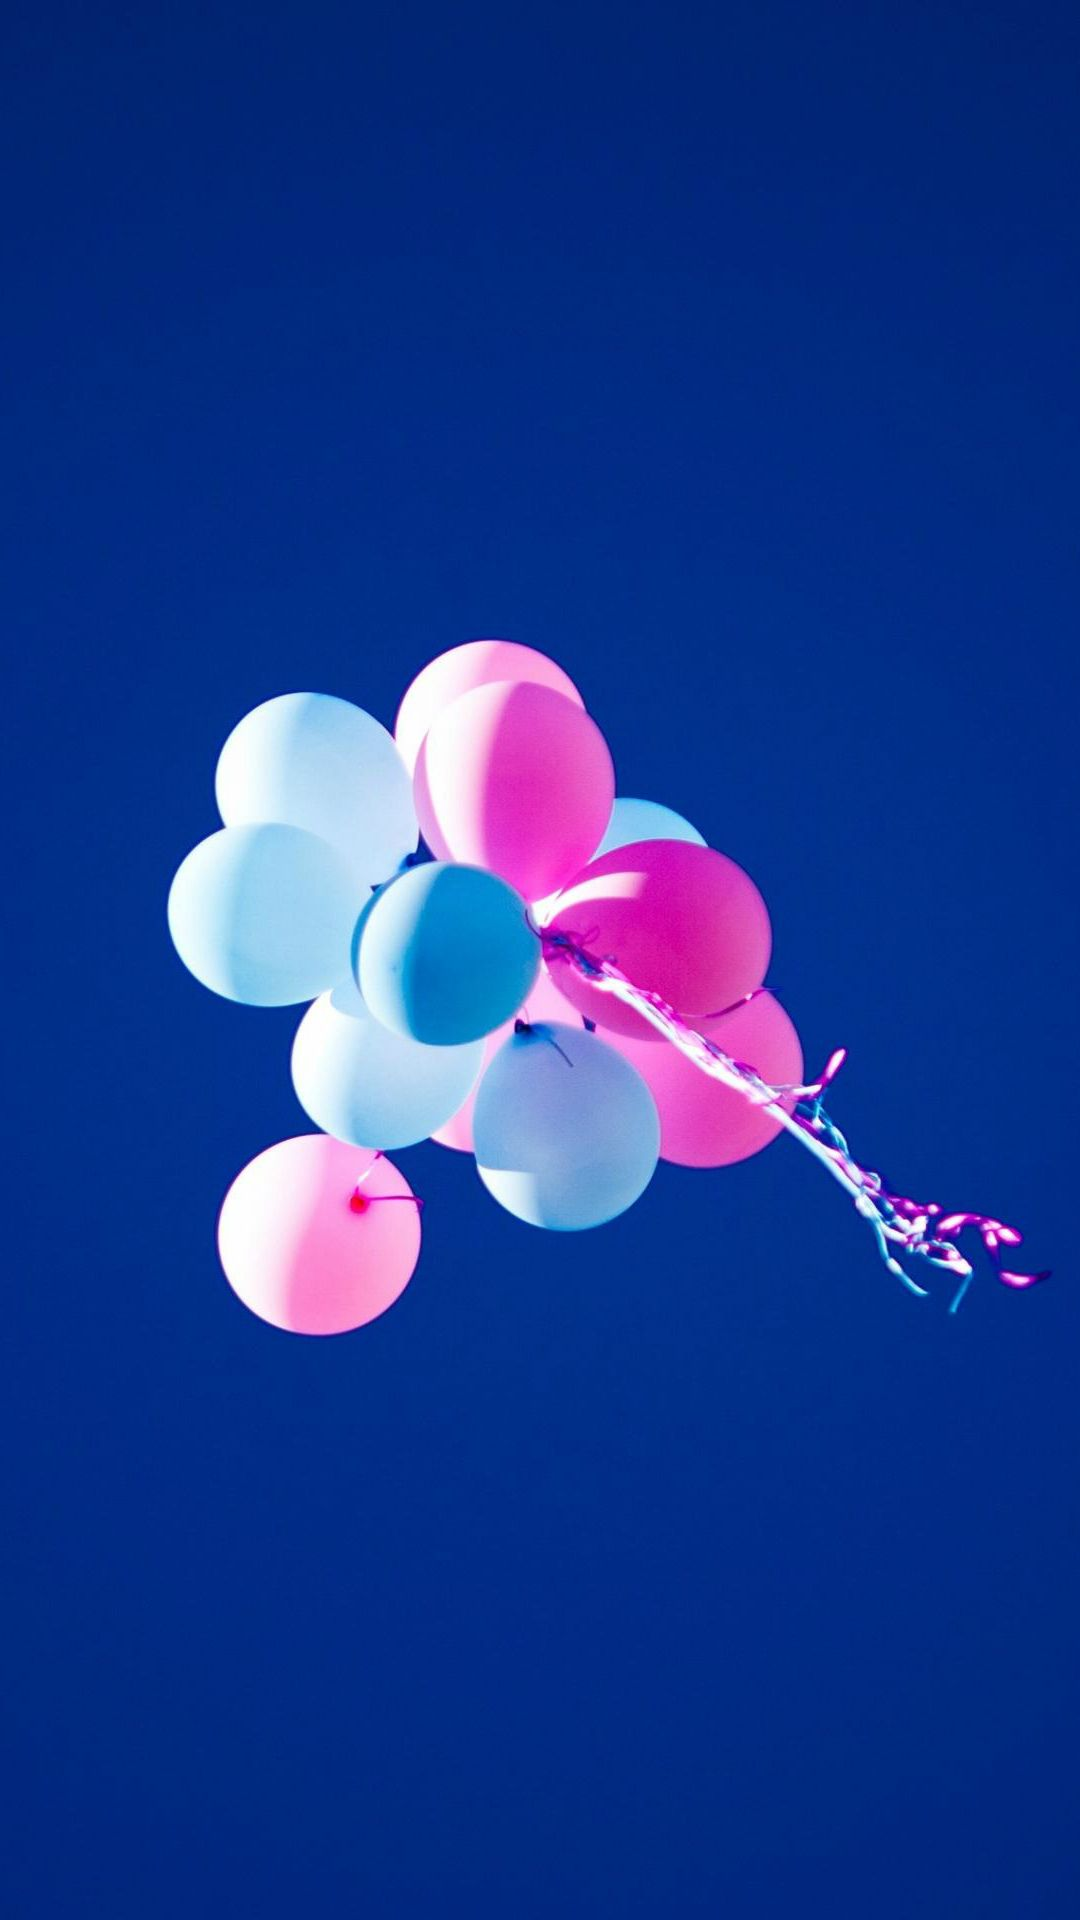 Flying Balloons In Blue Sky Iphone 7 Wallpaper